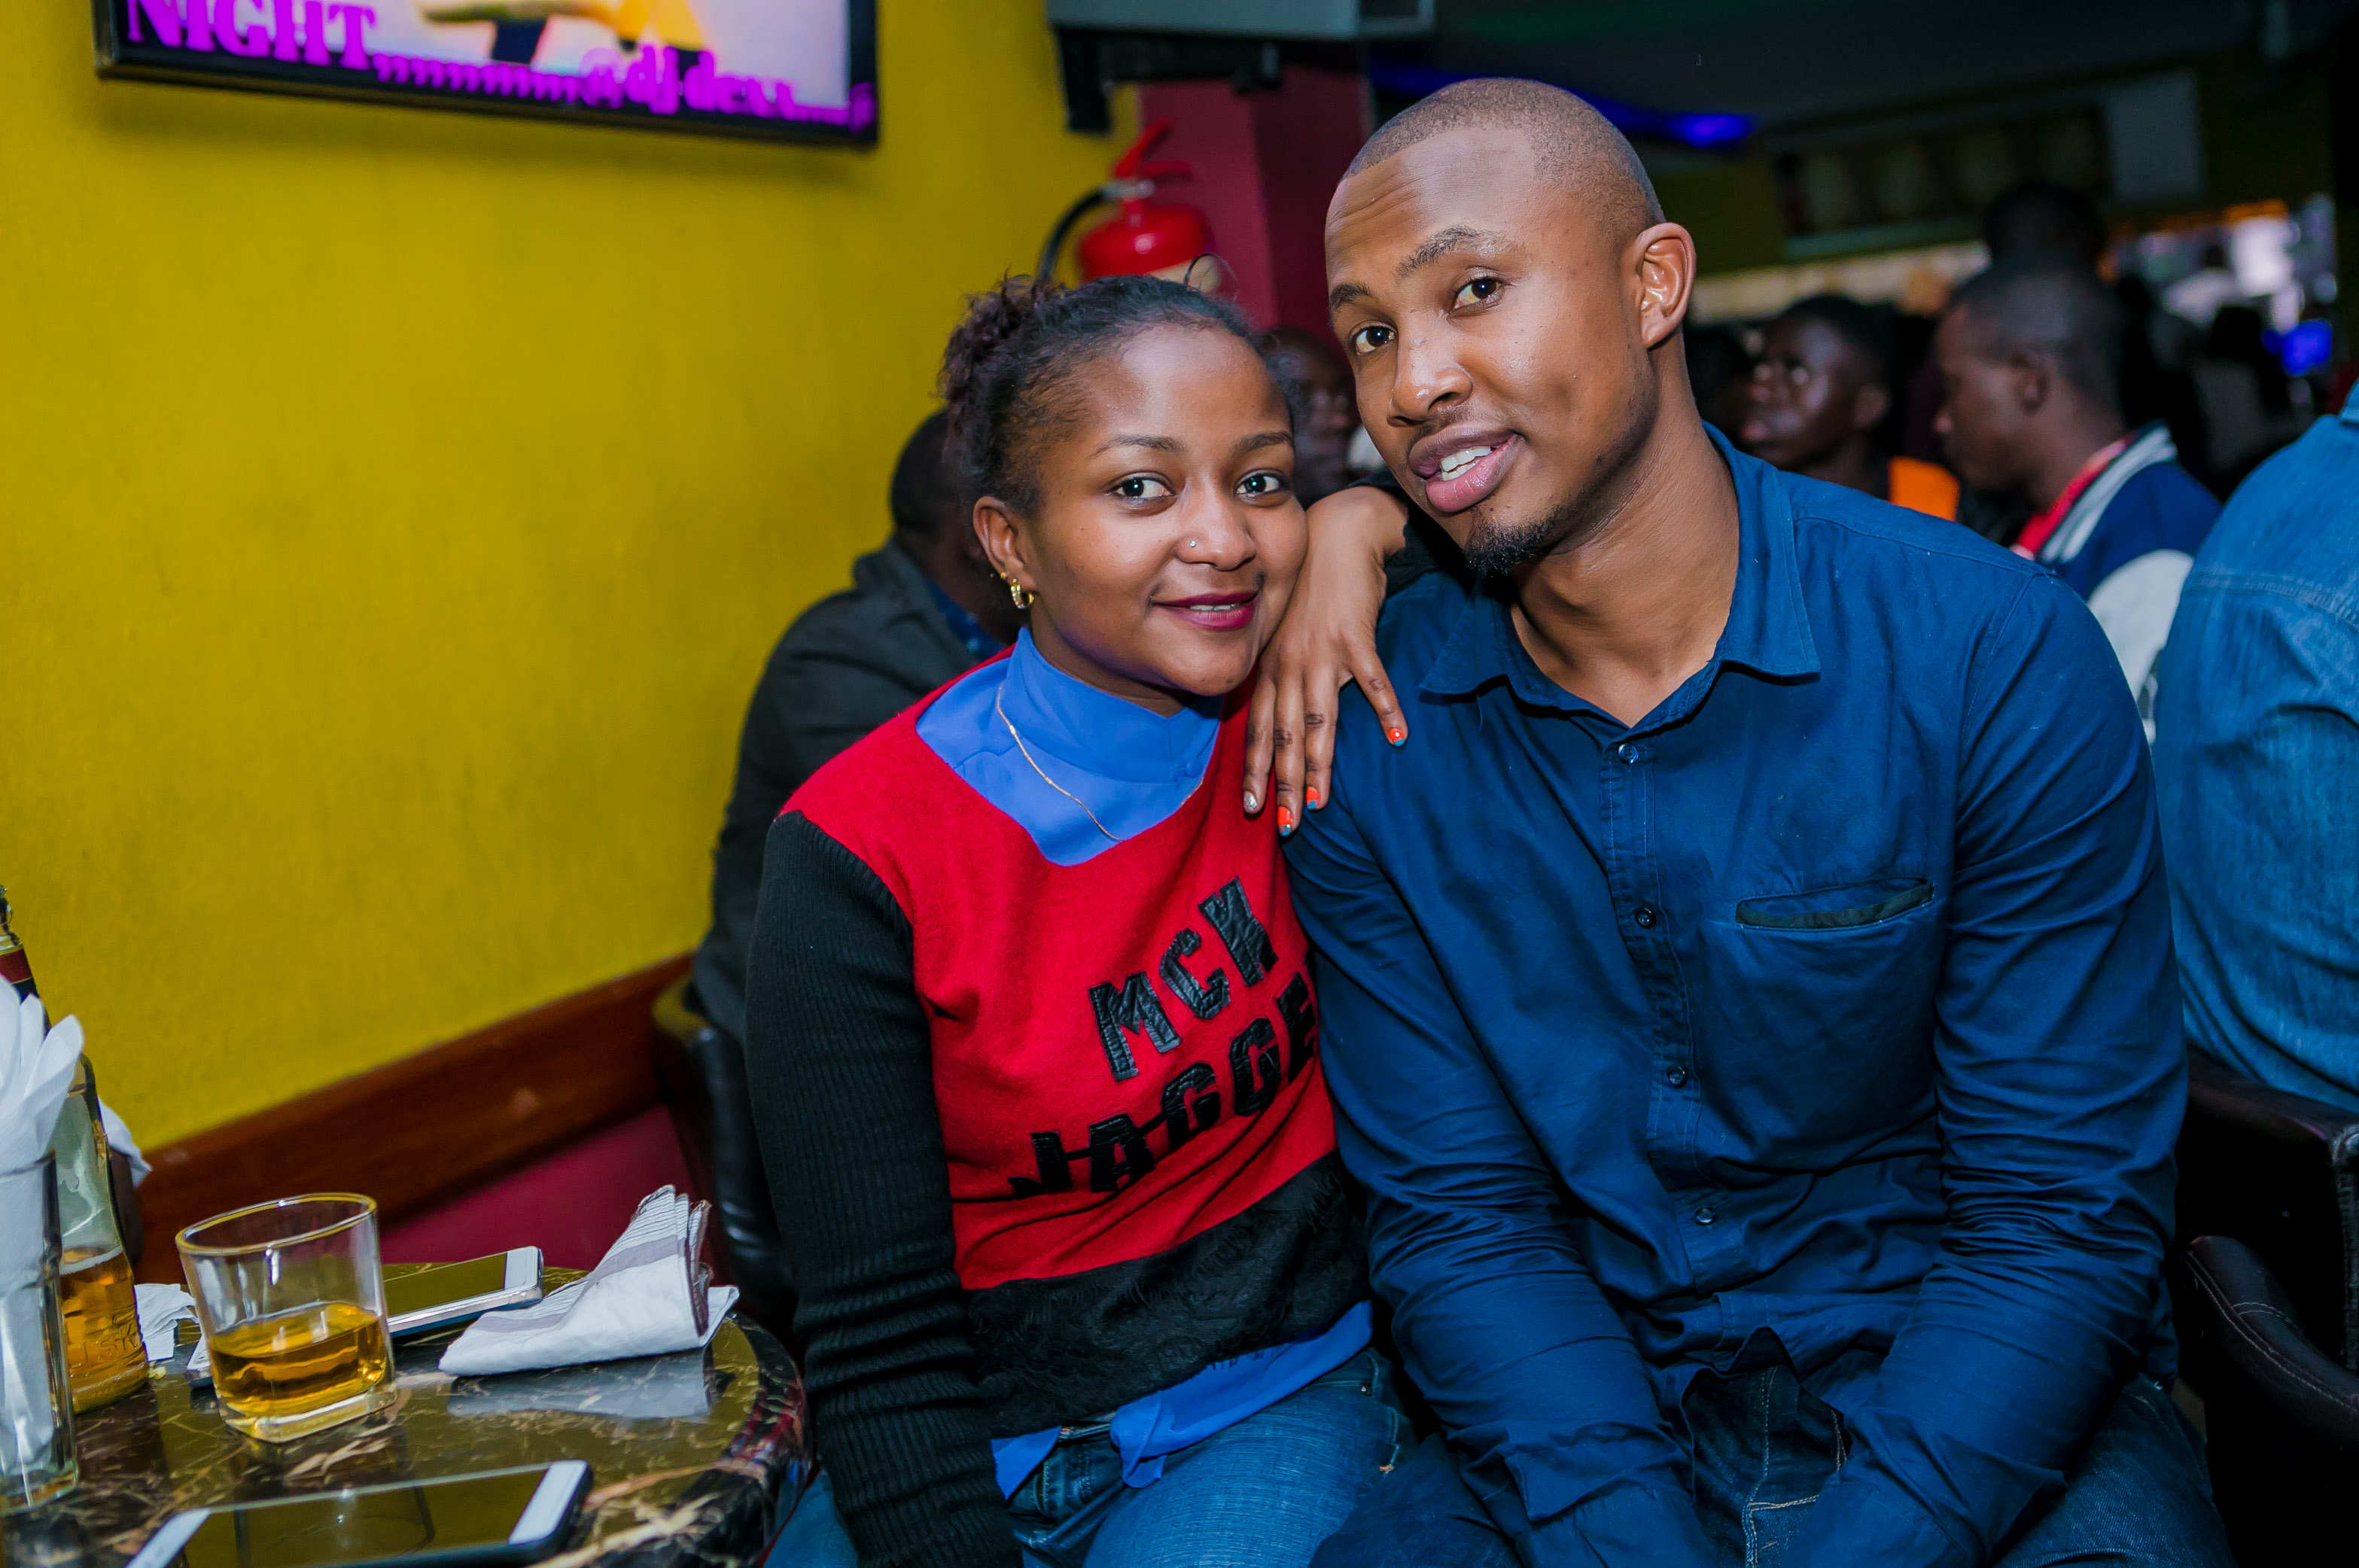 Night club photographer in Nairobi